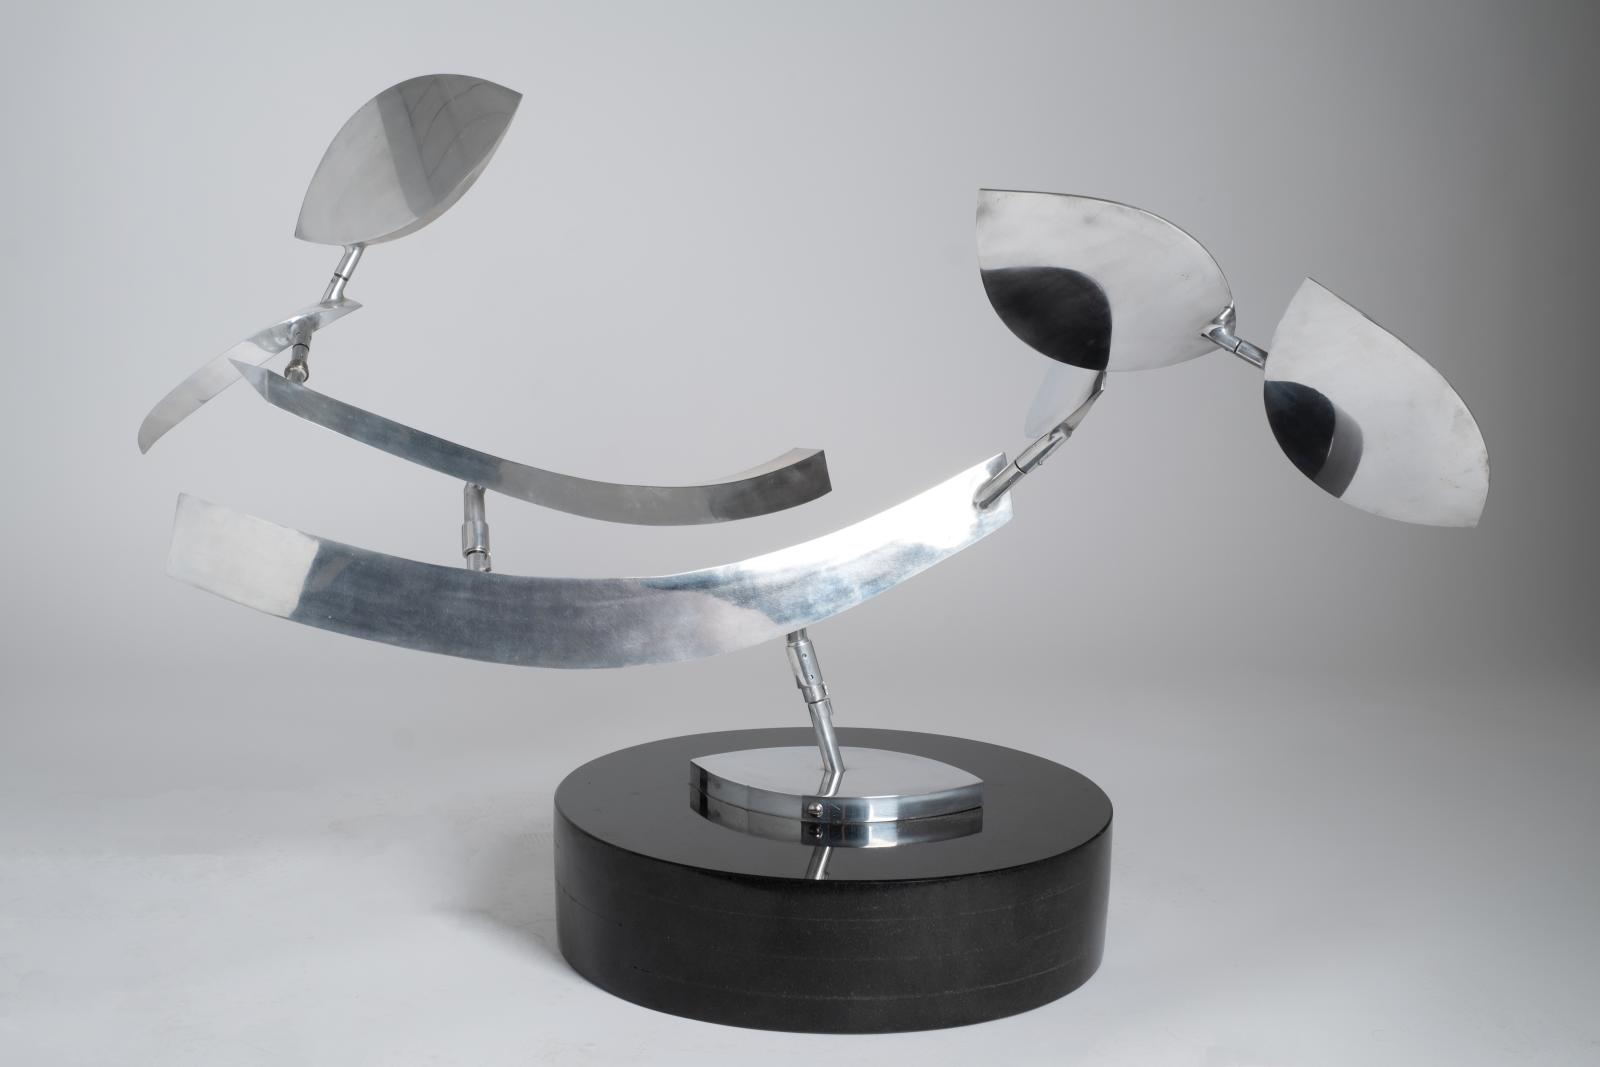 A polished aluminum sculpture consisting of two arms and four leaf shaped elements